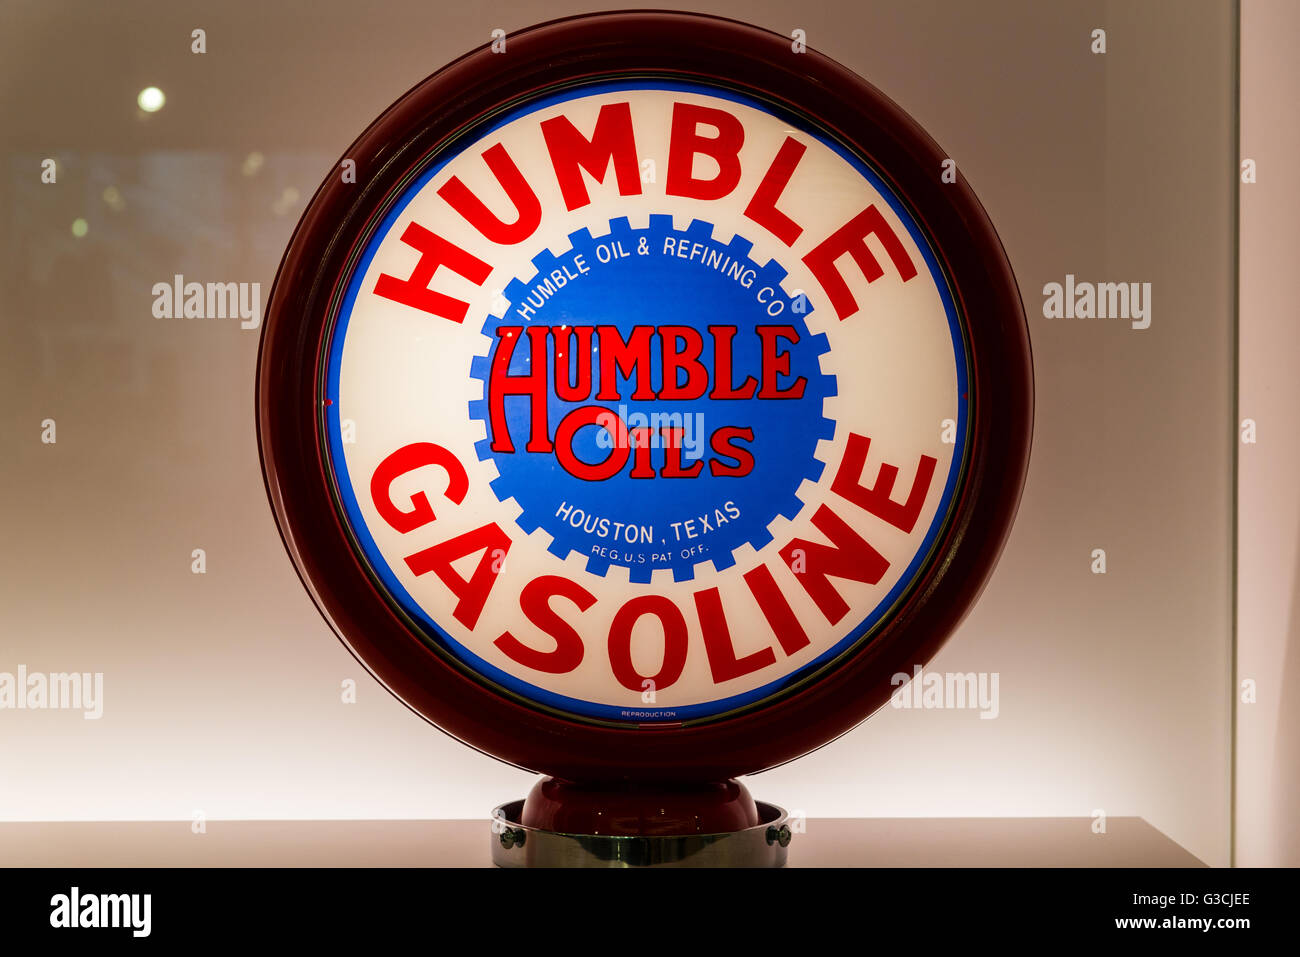 Glass globe for vintage Humble Gasoline pump in display. - Stock Image